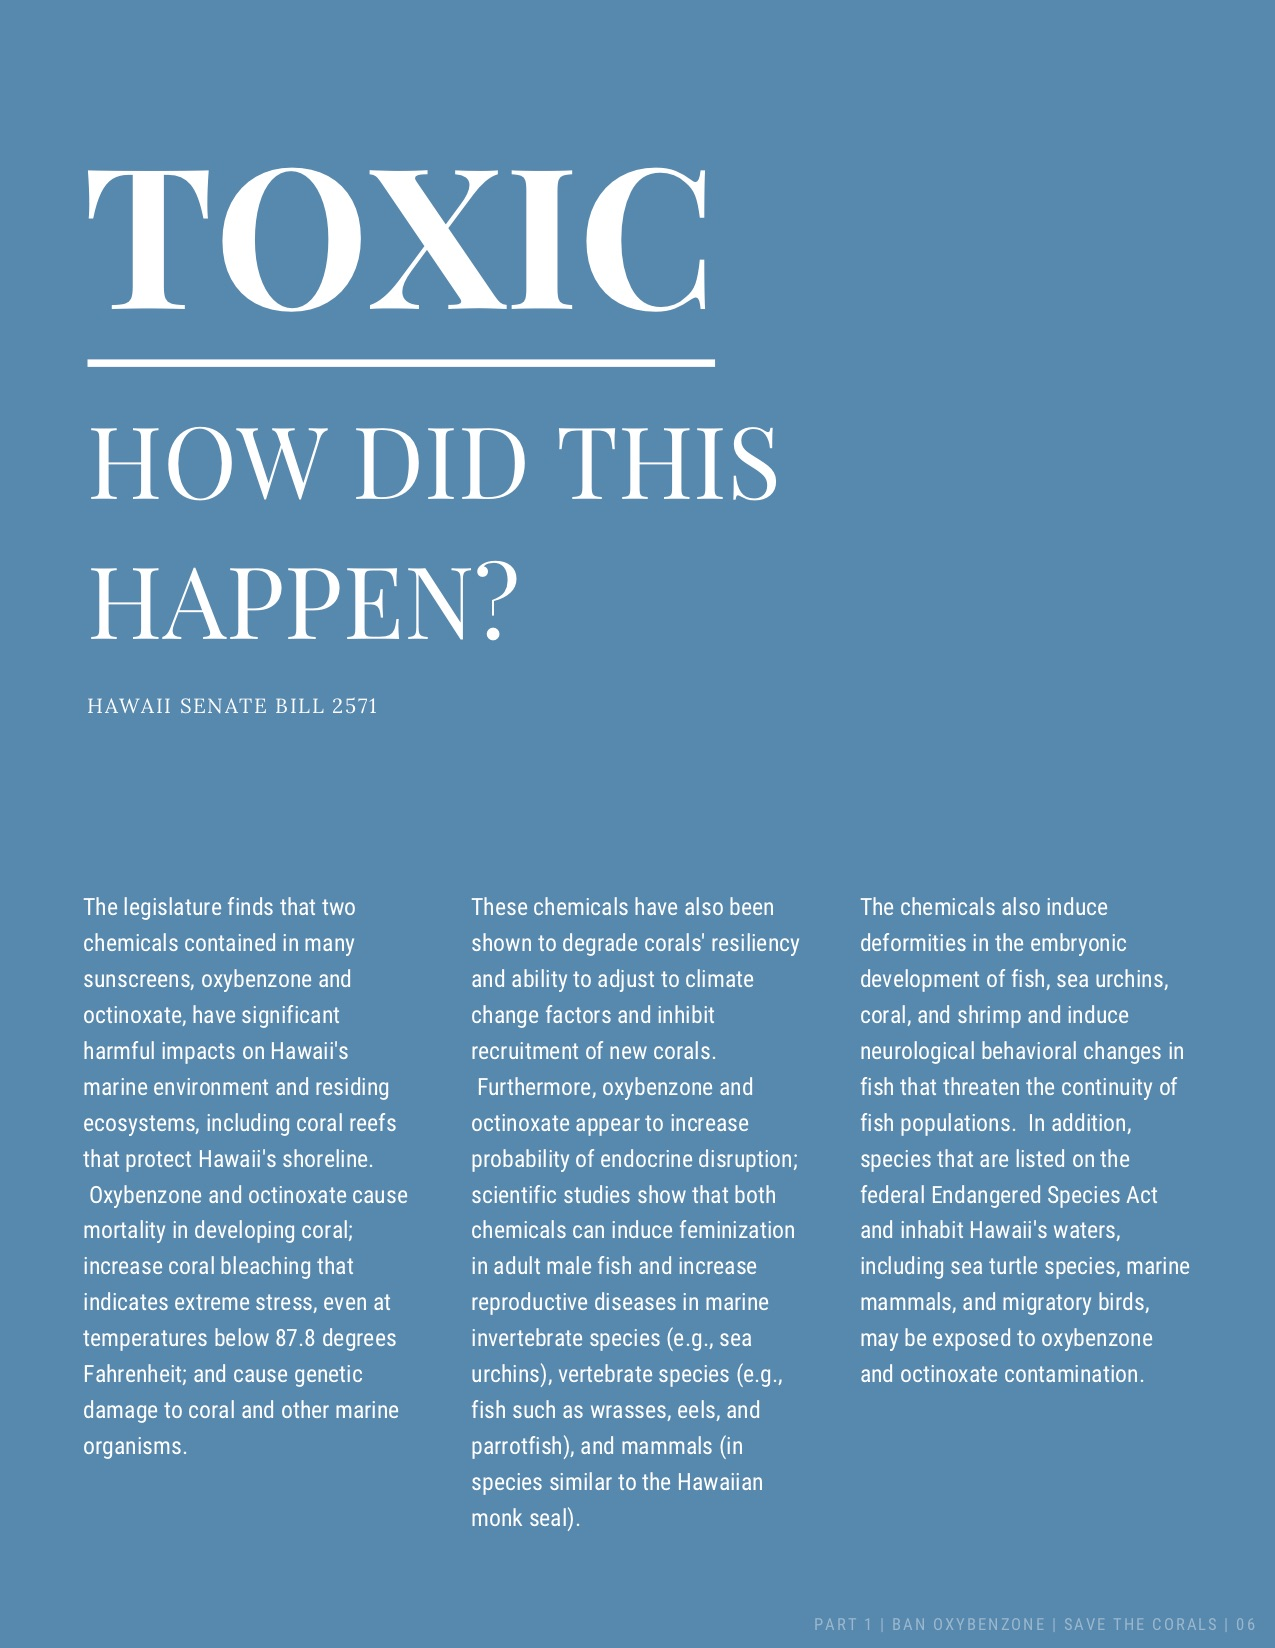 ban-oxybenzone-part-1-toxic-how-did-this-happen-06.jpg